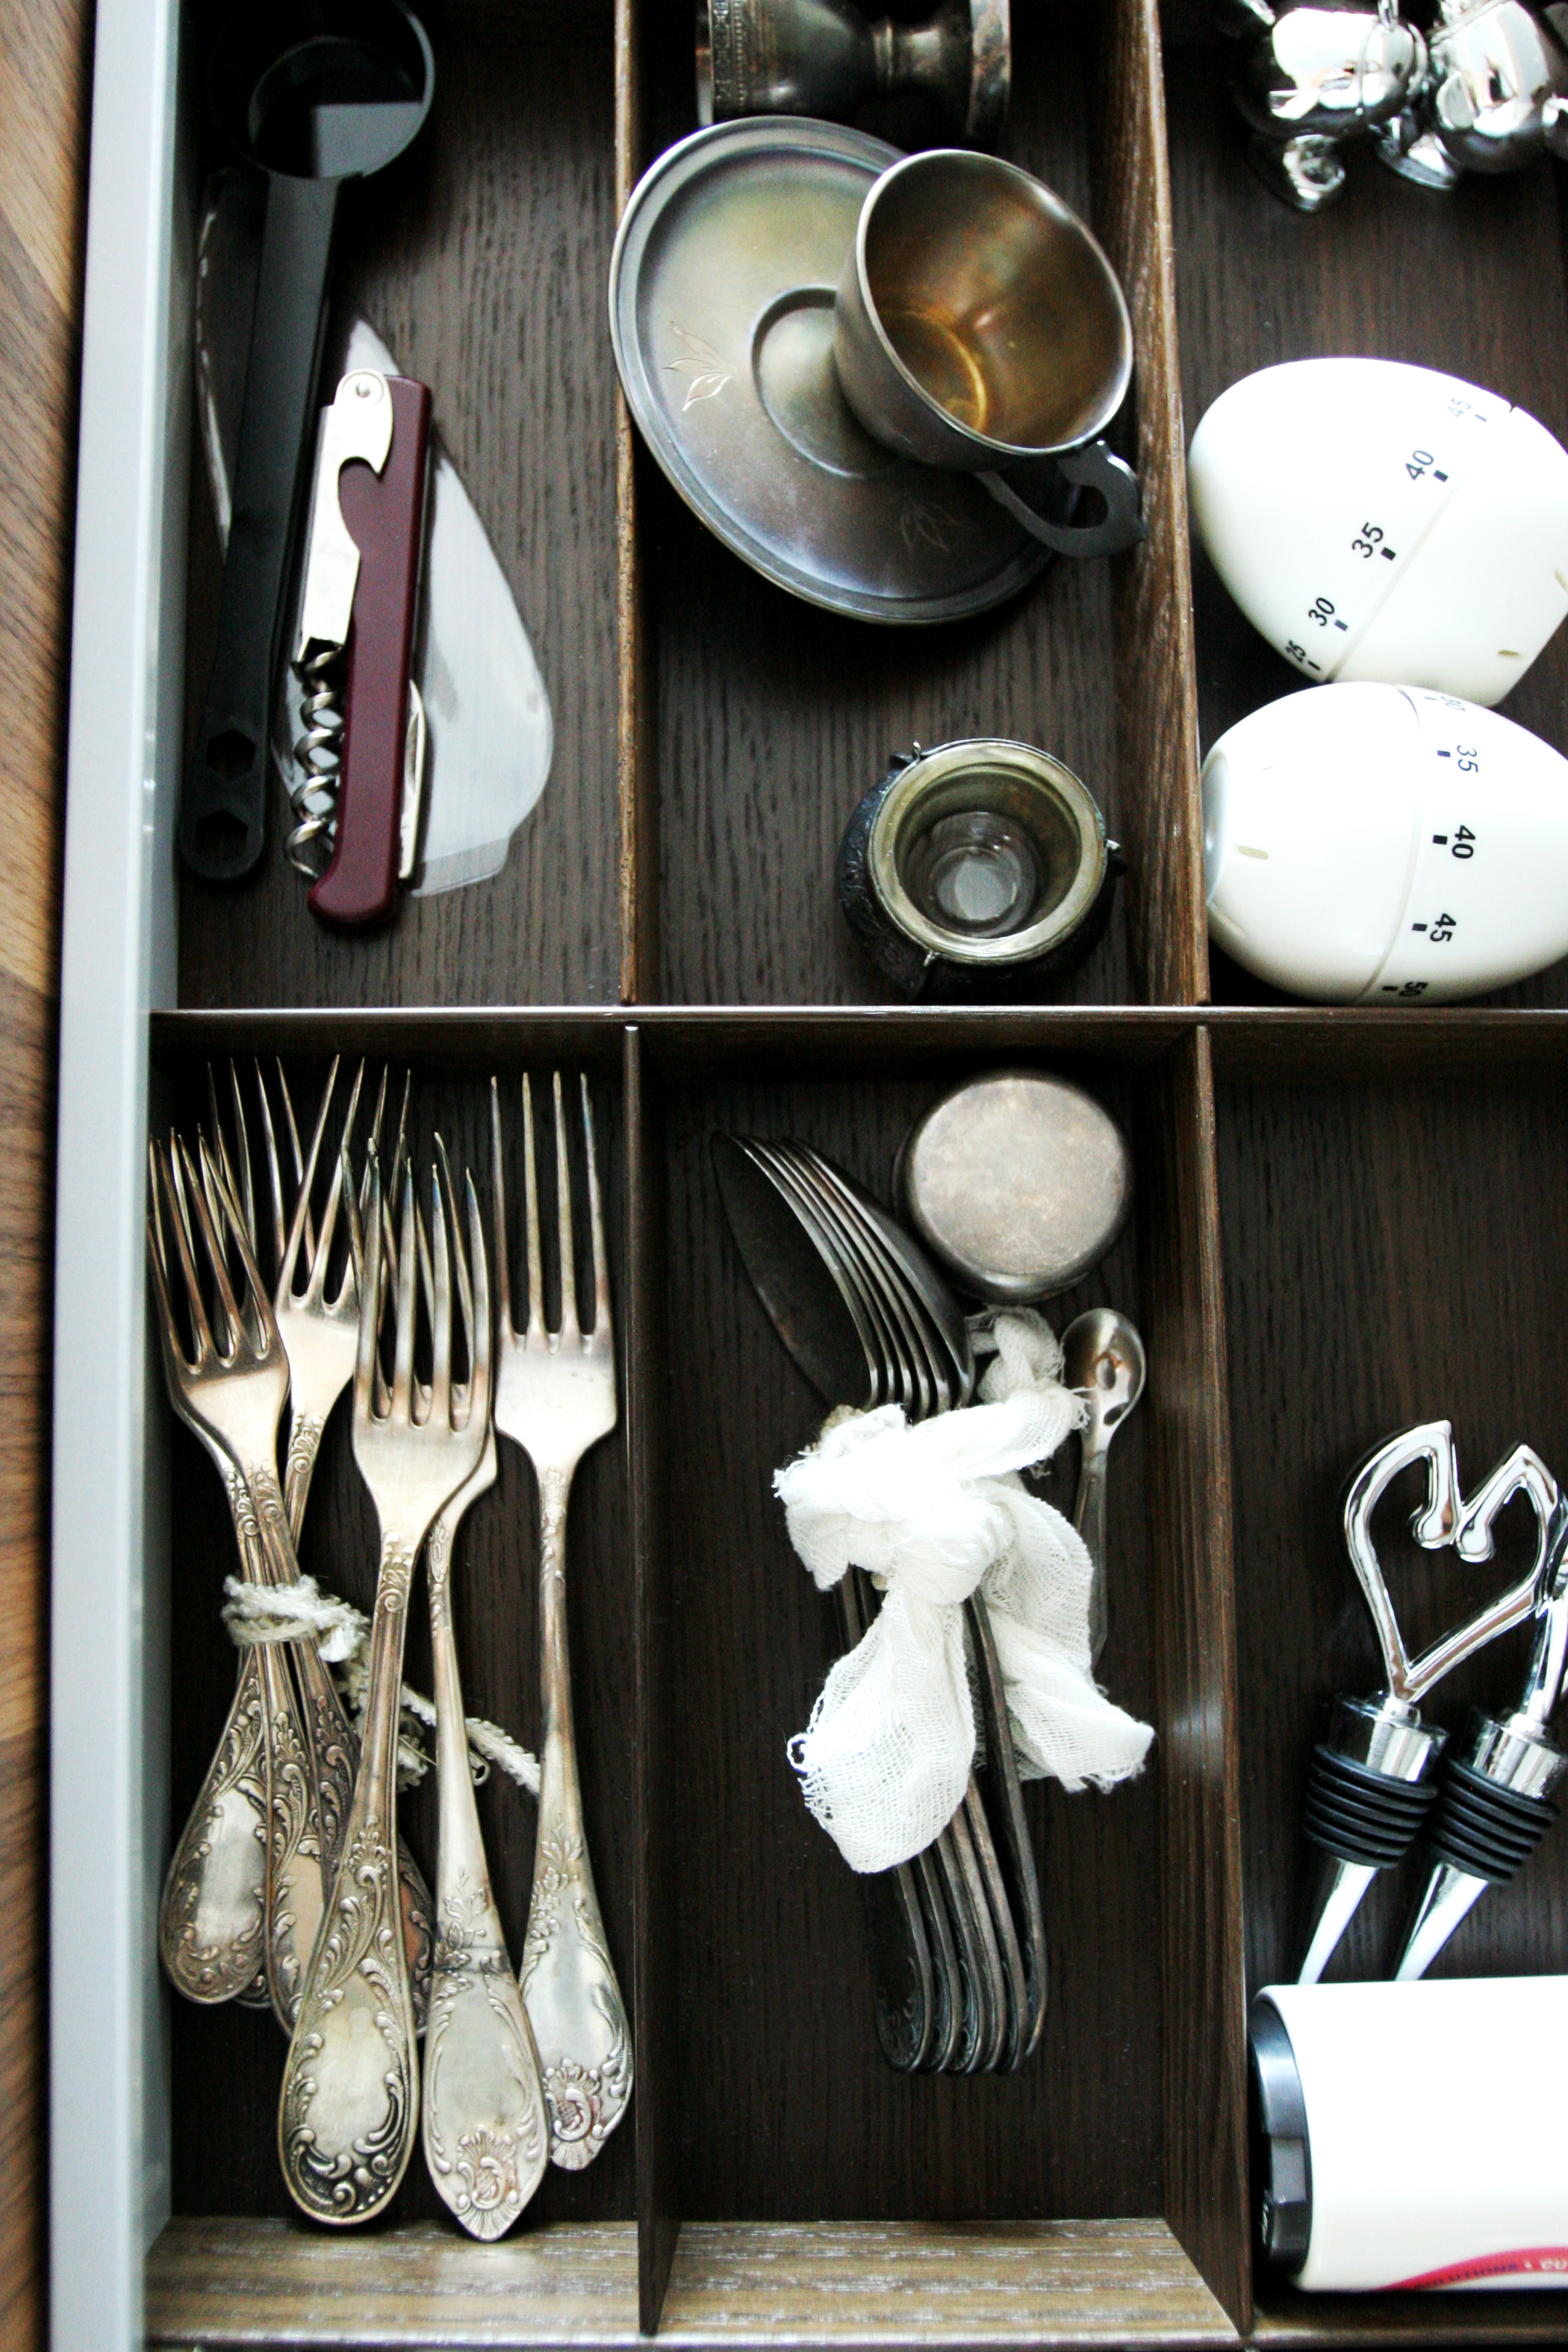 UTENSIL ORGANIZATION